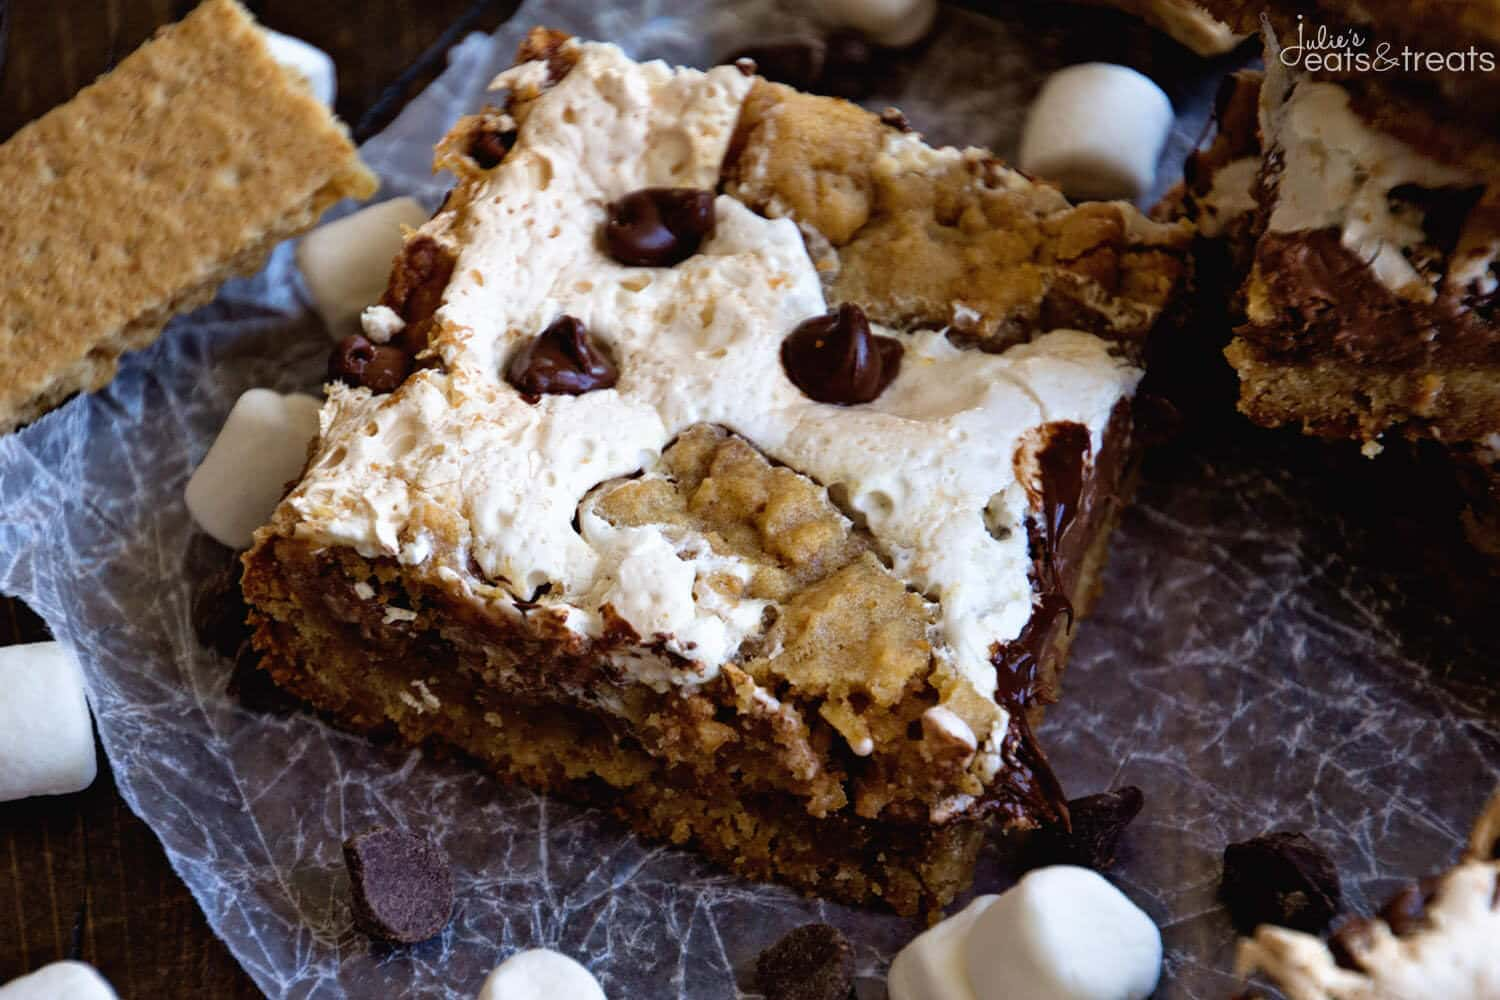 S'mores Bars ~ Now You Can Have a S'more Whenever You Want! These Delicious S'mores Bars Are Full of Graham Crackers, Marshmallows and Chocolate! Ooey, Gooey and Delicious!